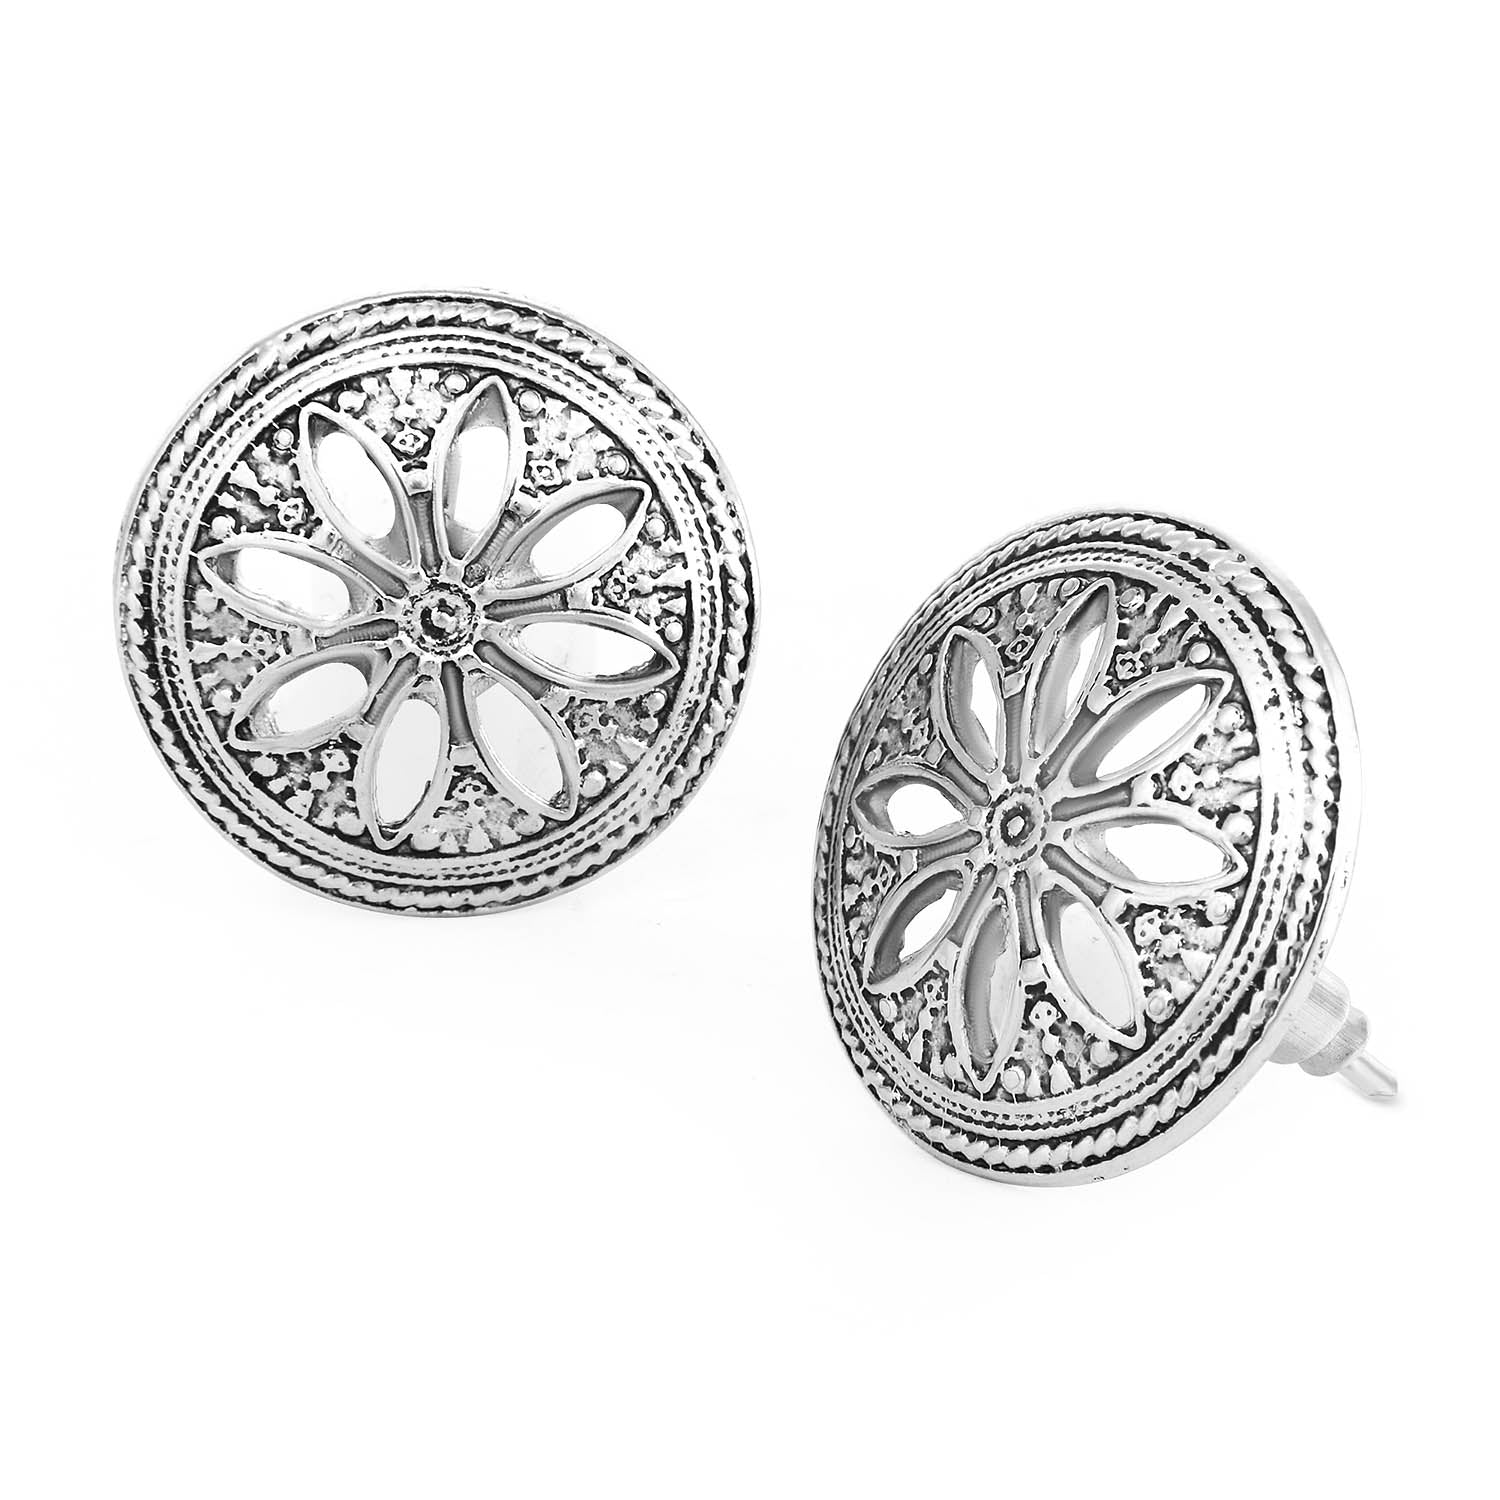 Sukkhi Amazing Oxidised Floral Stud Earring For Women-SUKKHI1-Earring